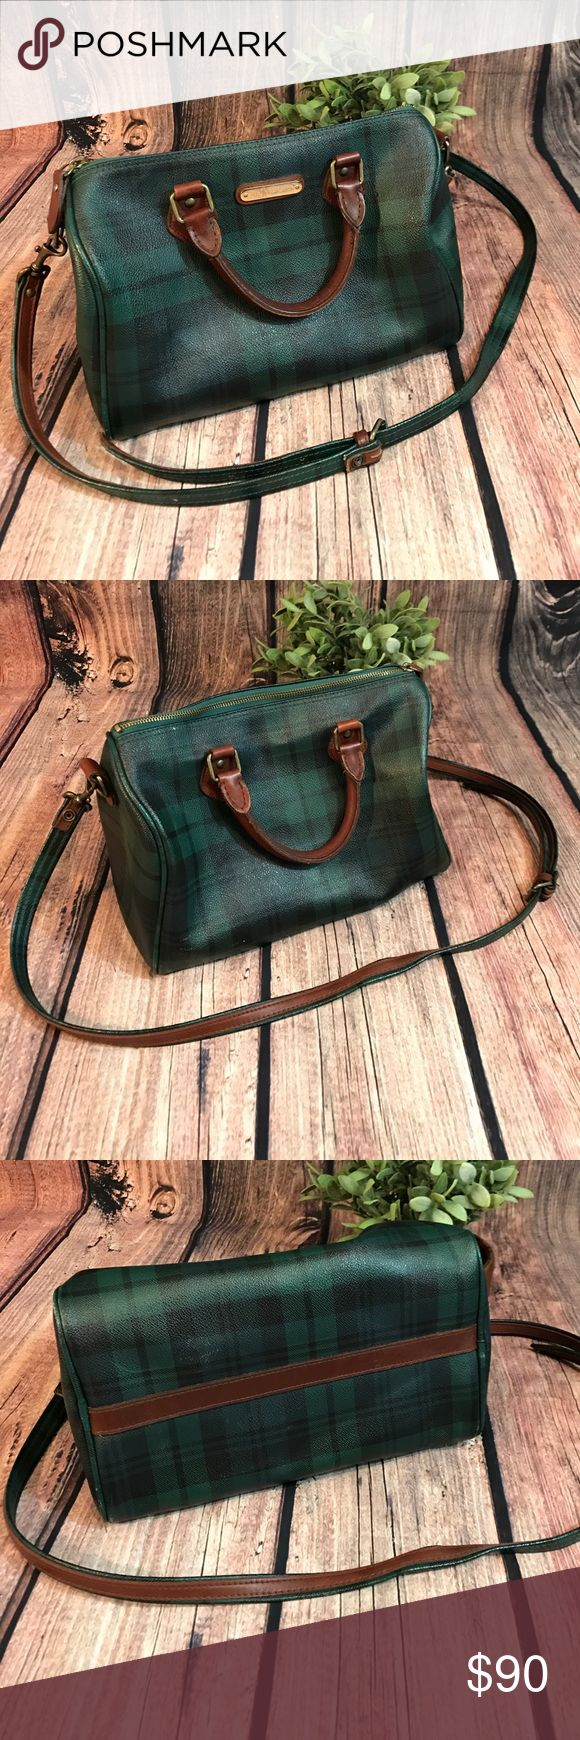 "Vintage Polo Ralph Lauren Doctor Bag Polo Ralph Lauren Doctor Bag in Tartan Plaid Speedy Boston Purse Vintage. Bag length 12"" strap drop Material canvas and leather. Used condition. Approximately 11 1/2"" long. 8"" tall 7"" wide. Polo by Ralph Lauren Bags"